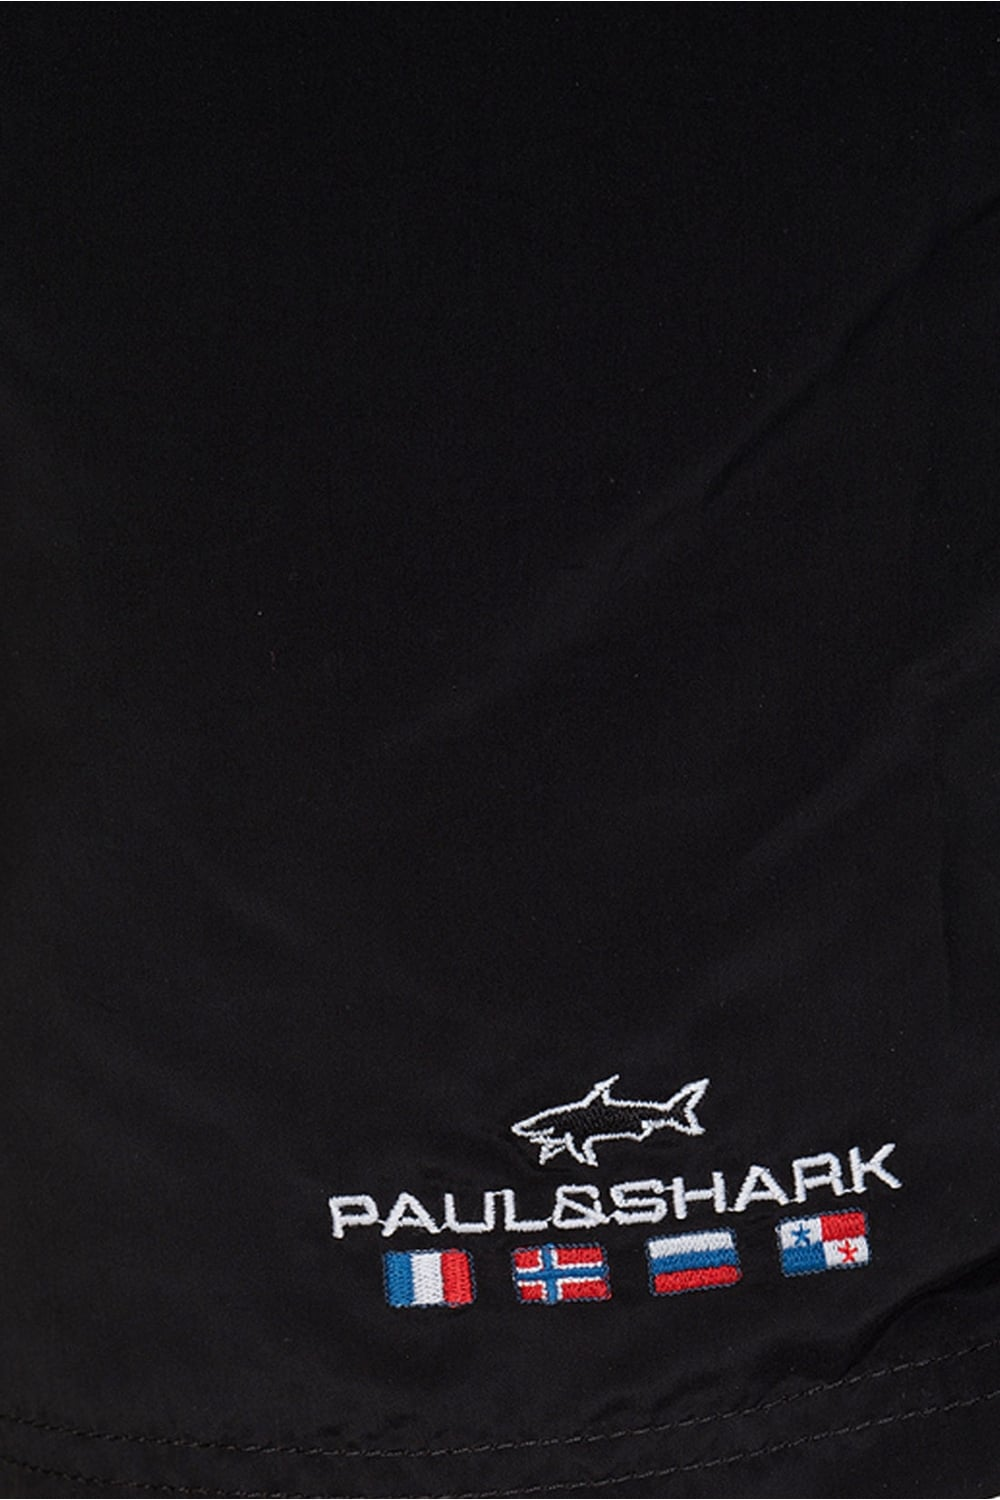 paul shark swim shorts paul shark from circle fashion uk. Black Bedroom Furniture Sets. Home Design Ideas